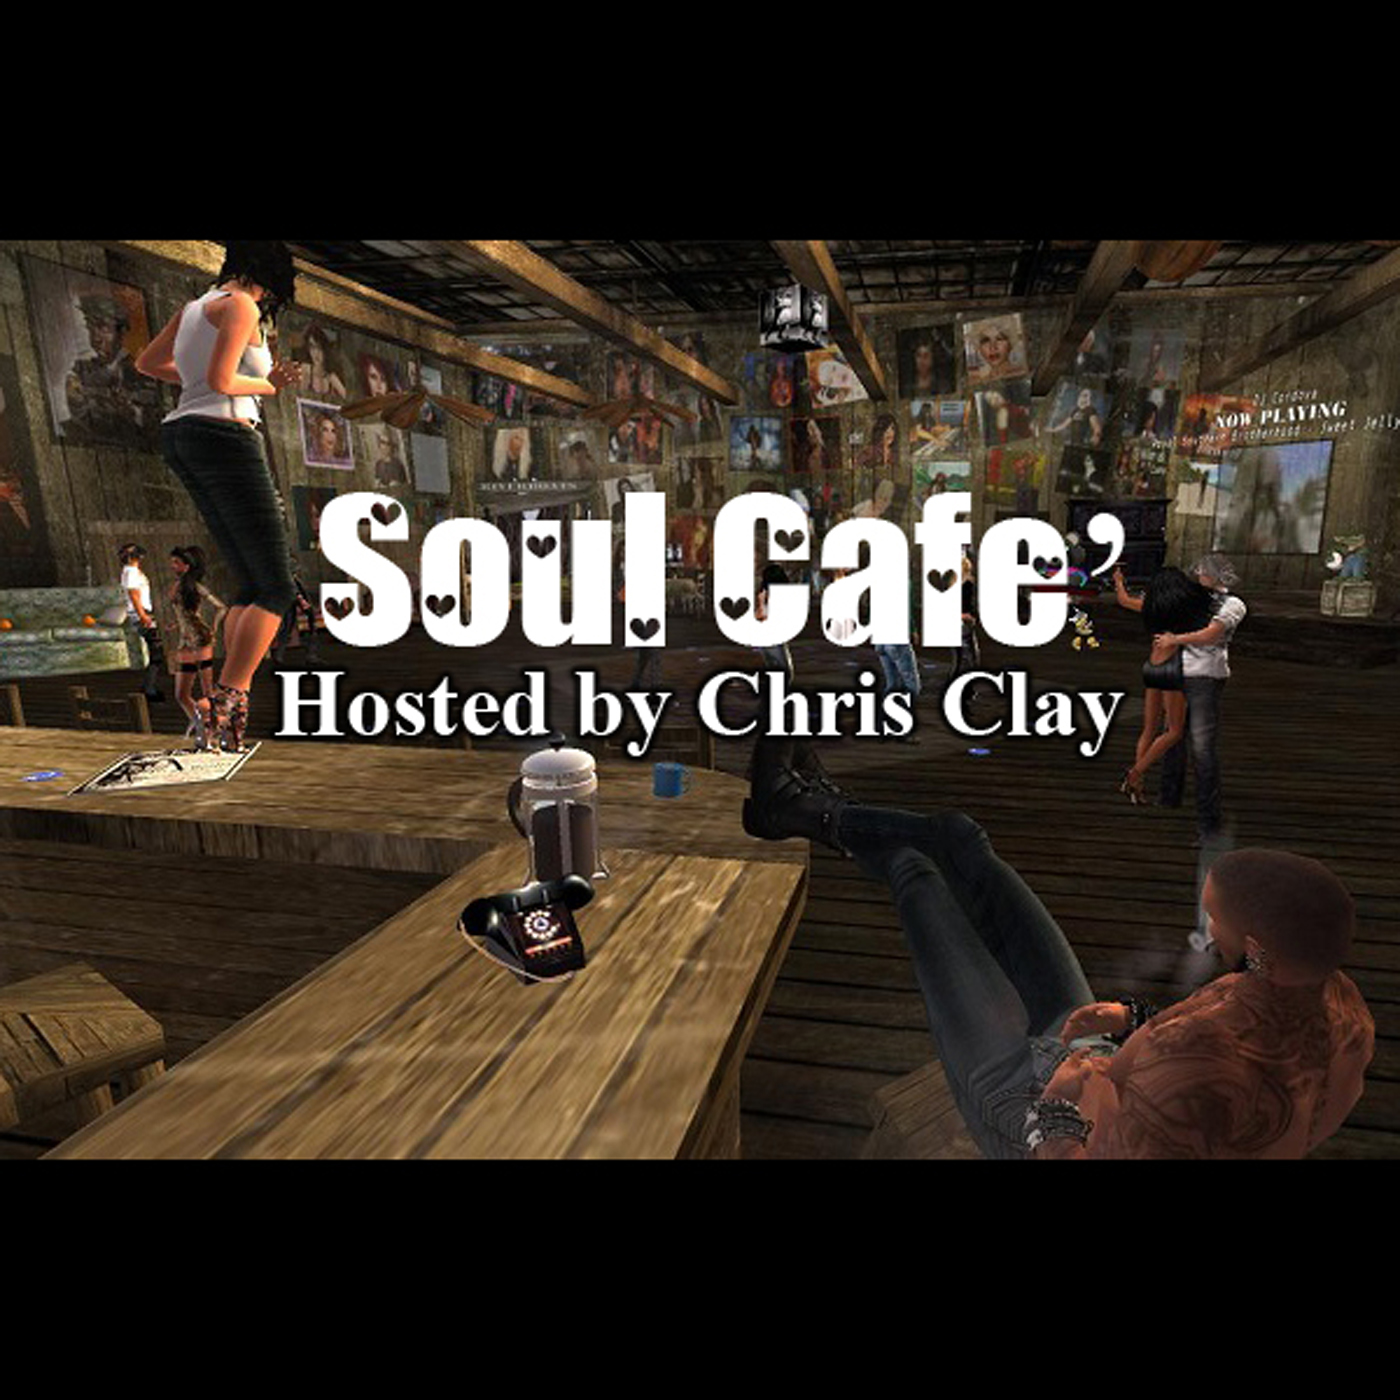 Chris Clay's Soul Cafe